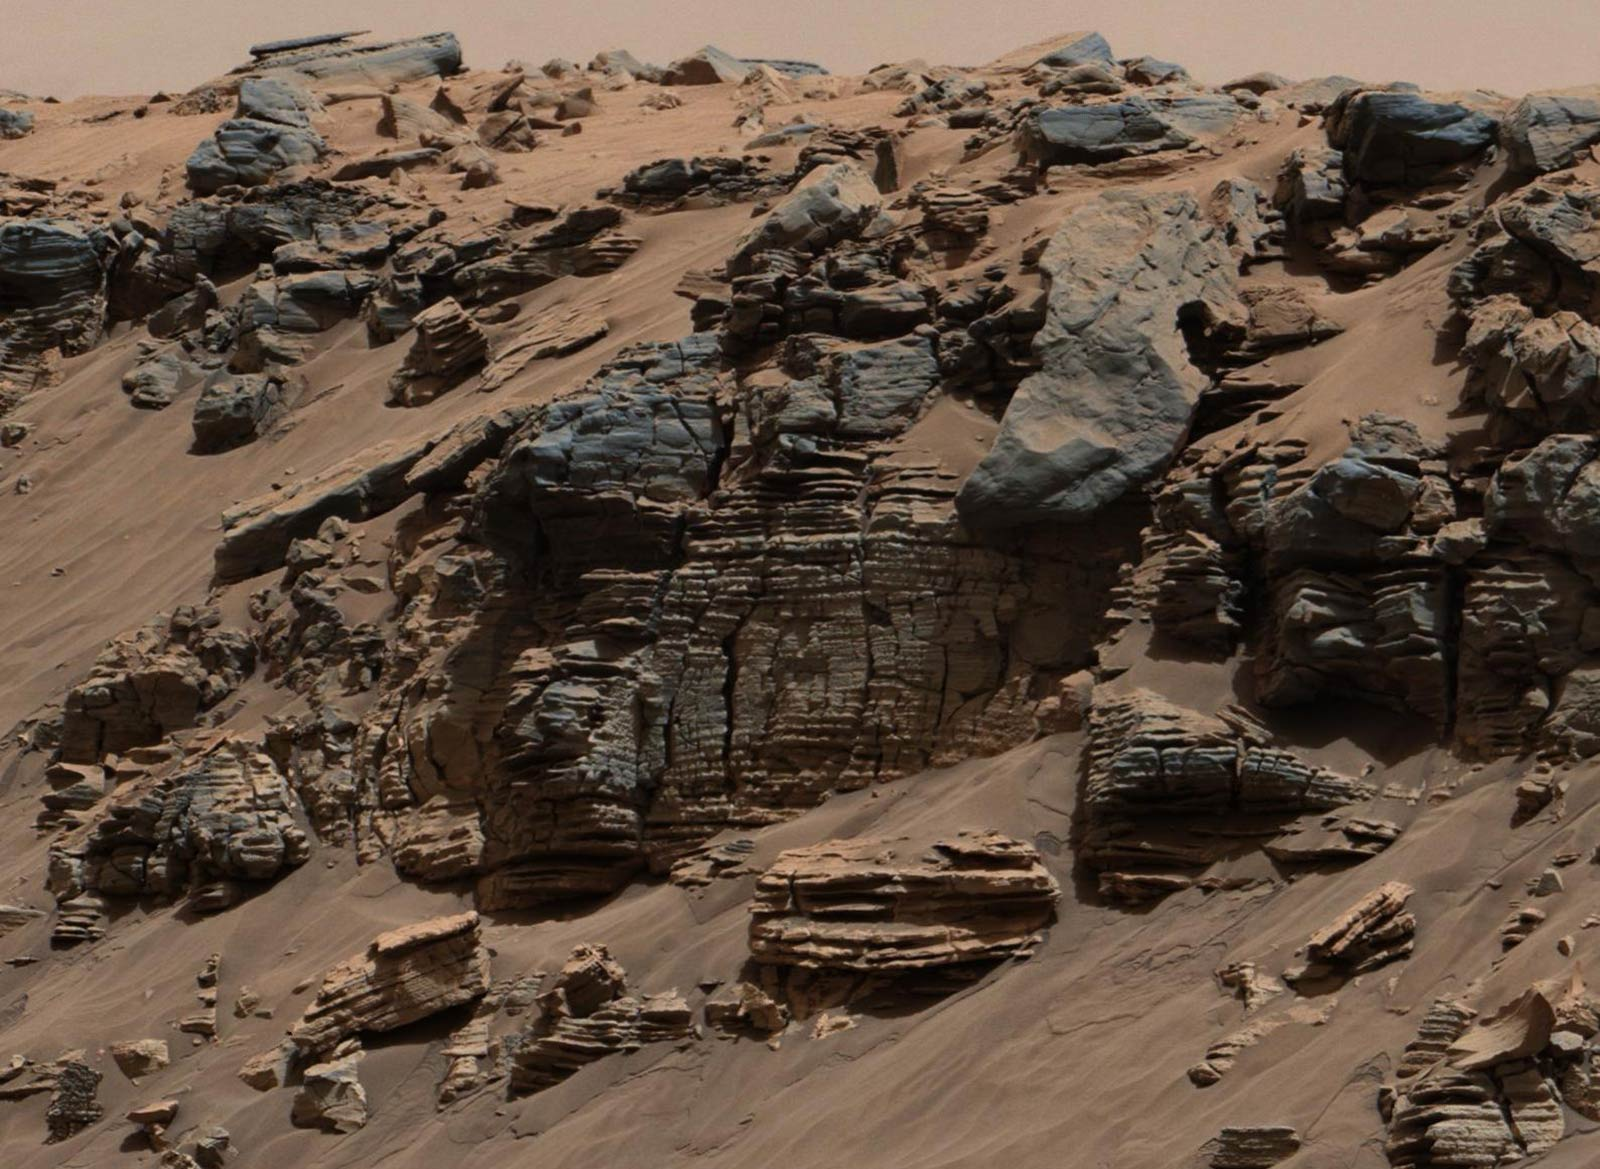 A shot of sedimentary rocks on Mars